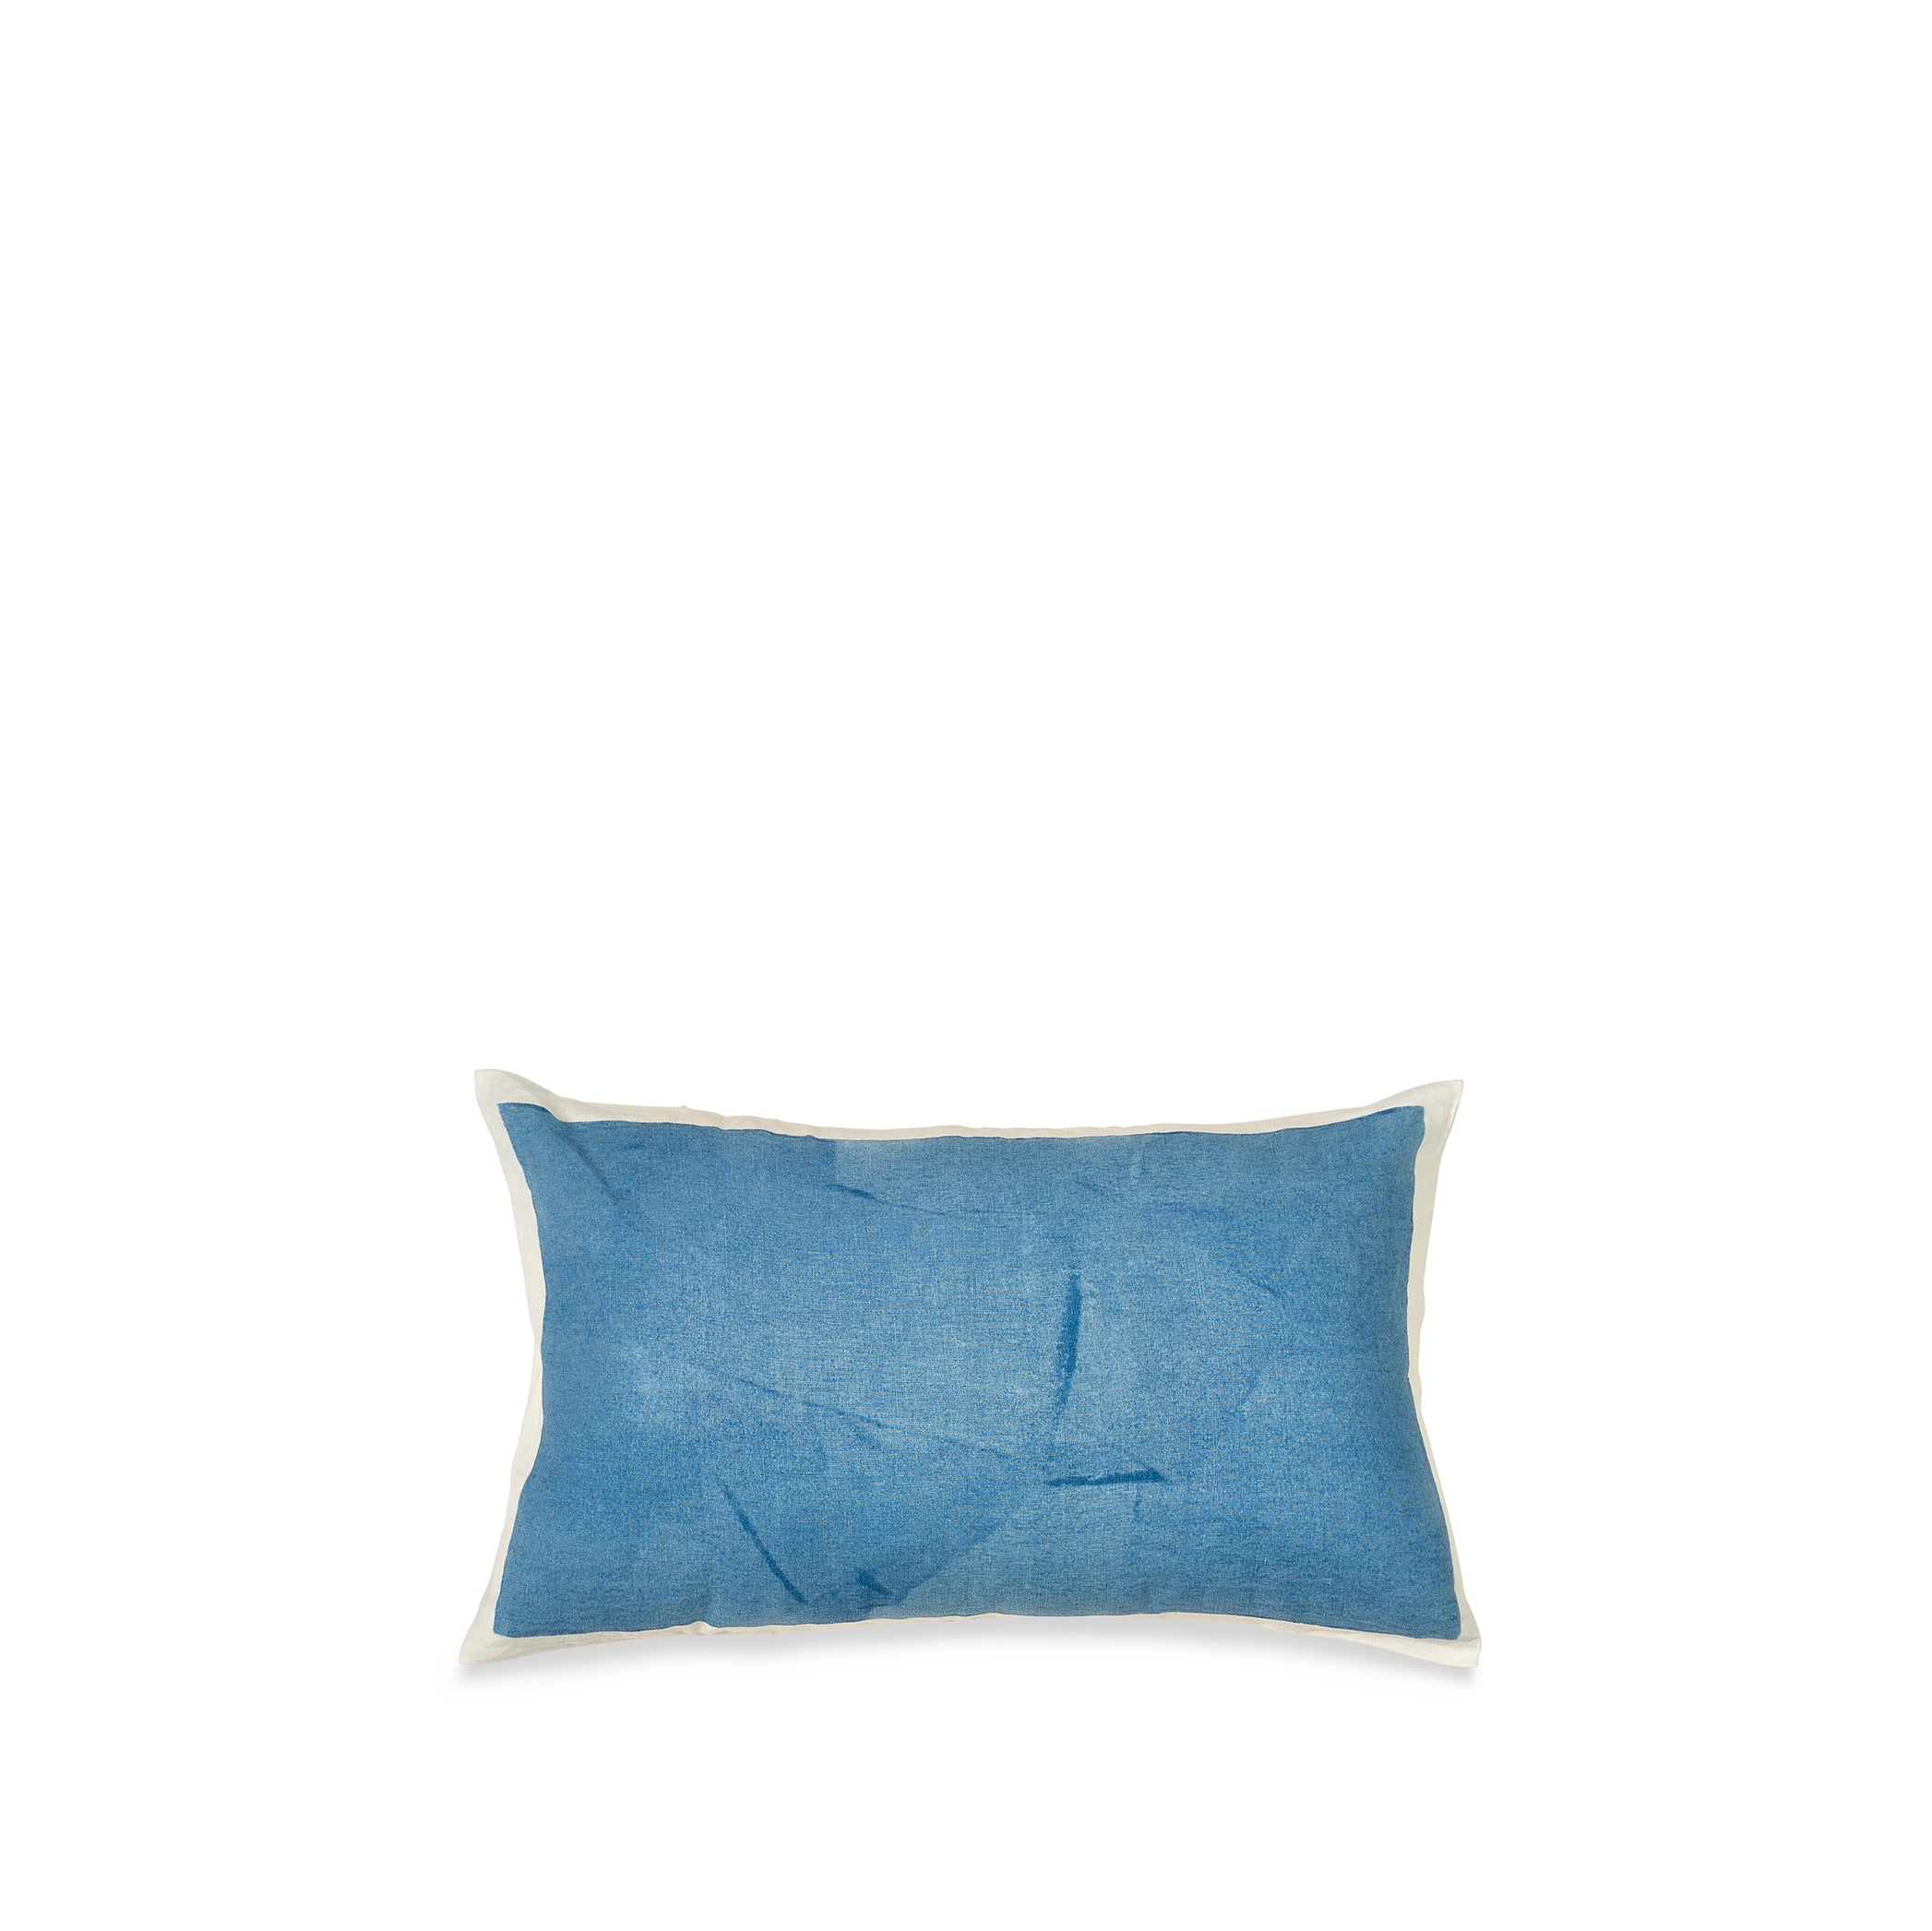 Hand Painted Linen Cushion Cover in Sky Blue, 50cm x 30cm